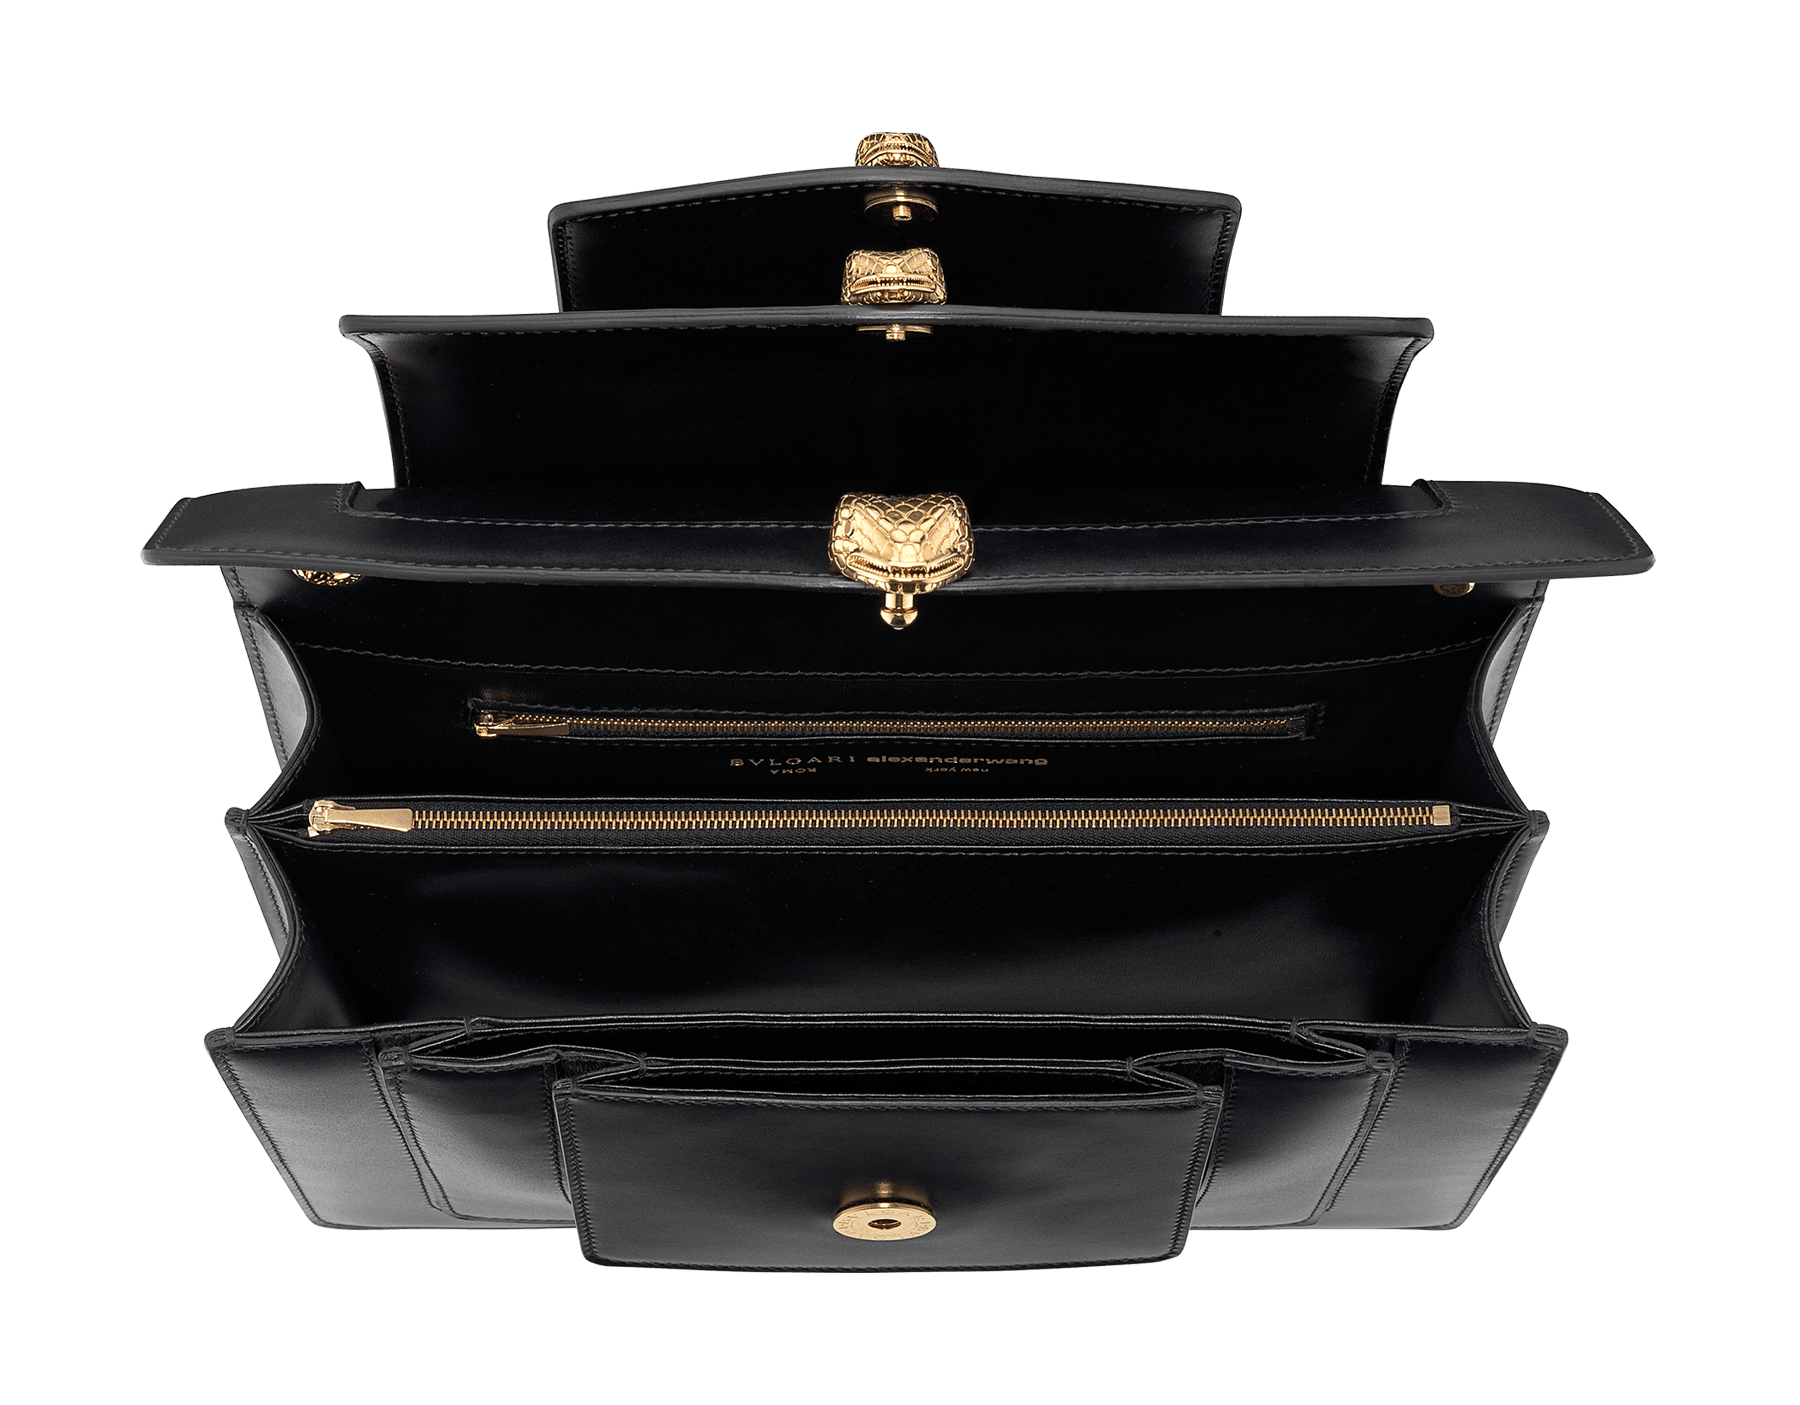 Alexander Wang x Bvlgari Triplette shoulder bag in smooth black calf leather. New triple Serpenti head closure in antique gold plated brass with tempting red enamel eyes. Limited edition. SFW-001-1003M image 4